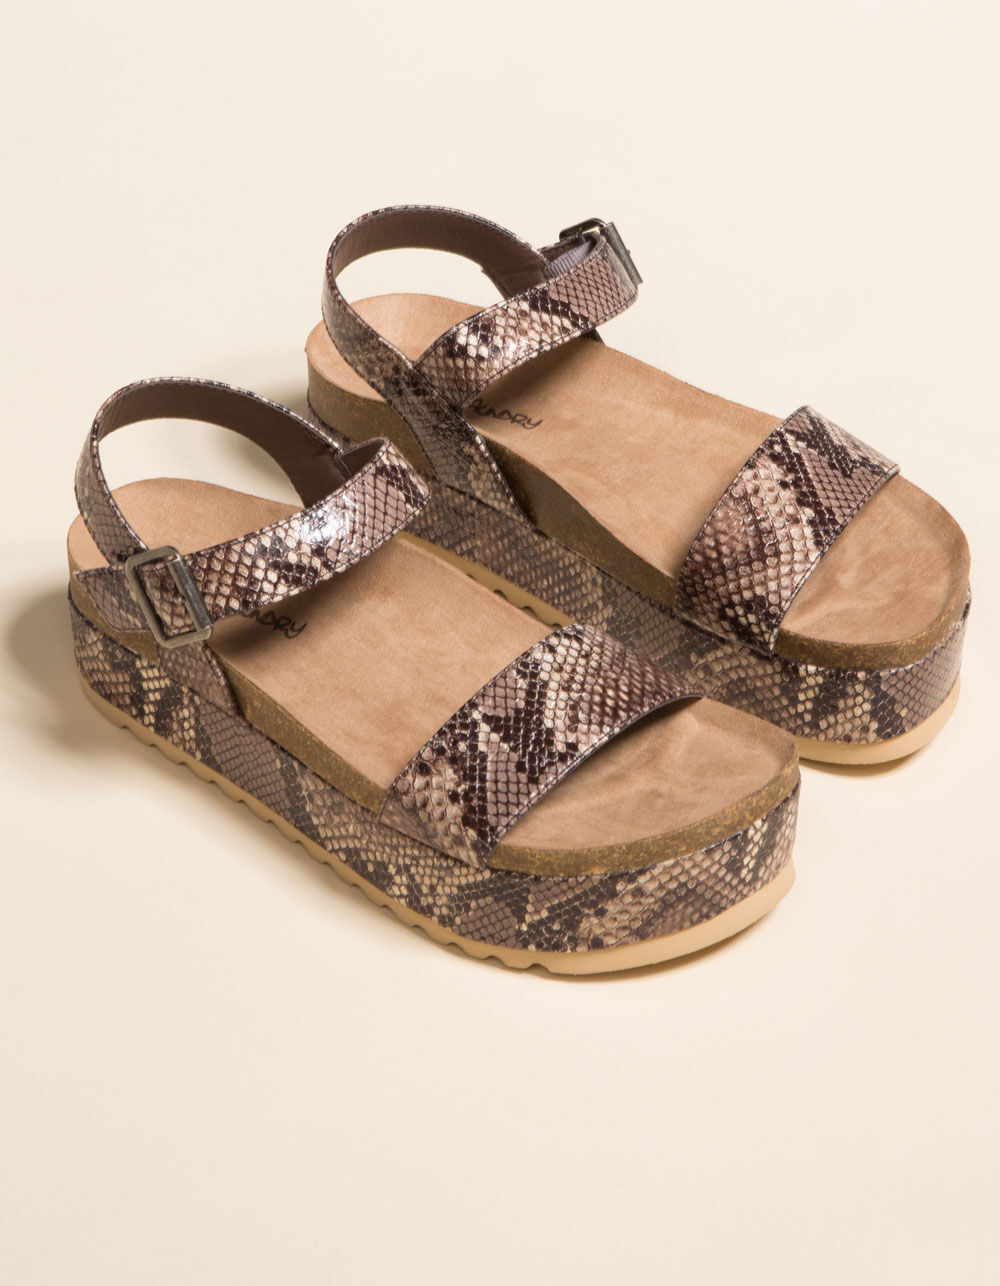 DIRTY LAUNDRY Palms Snake Flatform Sandals